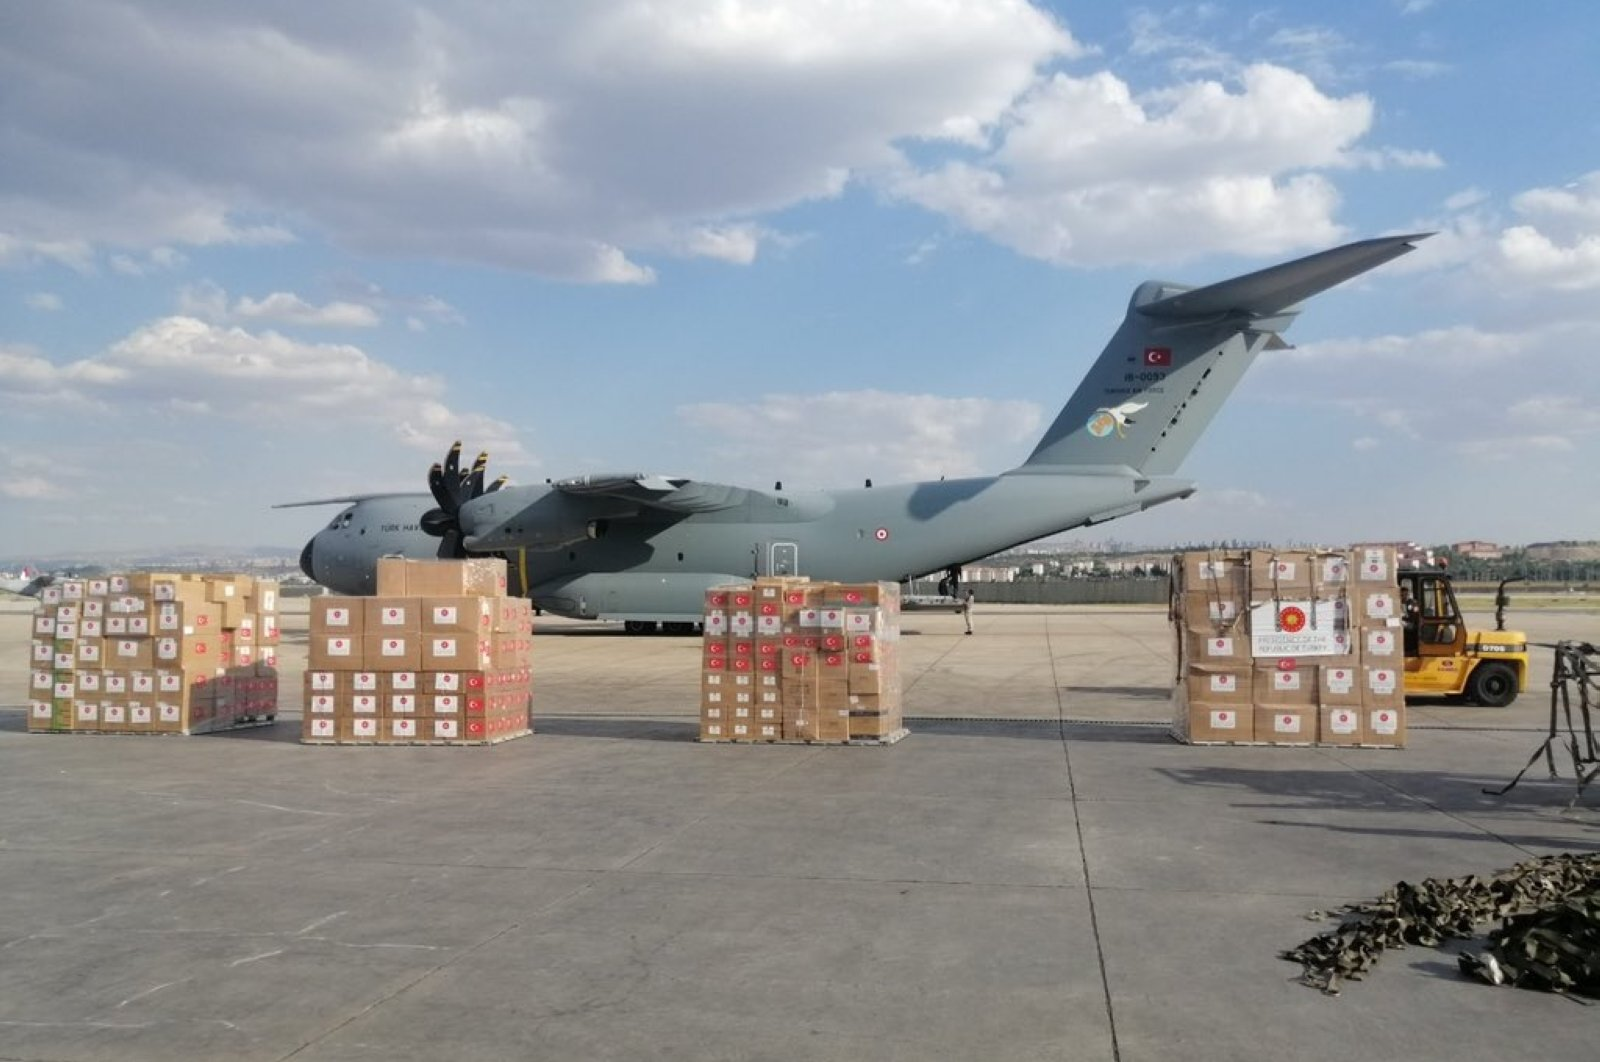 A Turkish Armed Forces A400M aircraft at Etimesgut Airport before it took off for Lebanon to deliver medical aid, Ankara, Turkey, Aug. 11, 2020. (Defense Ministry via AA)